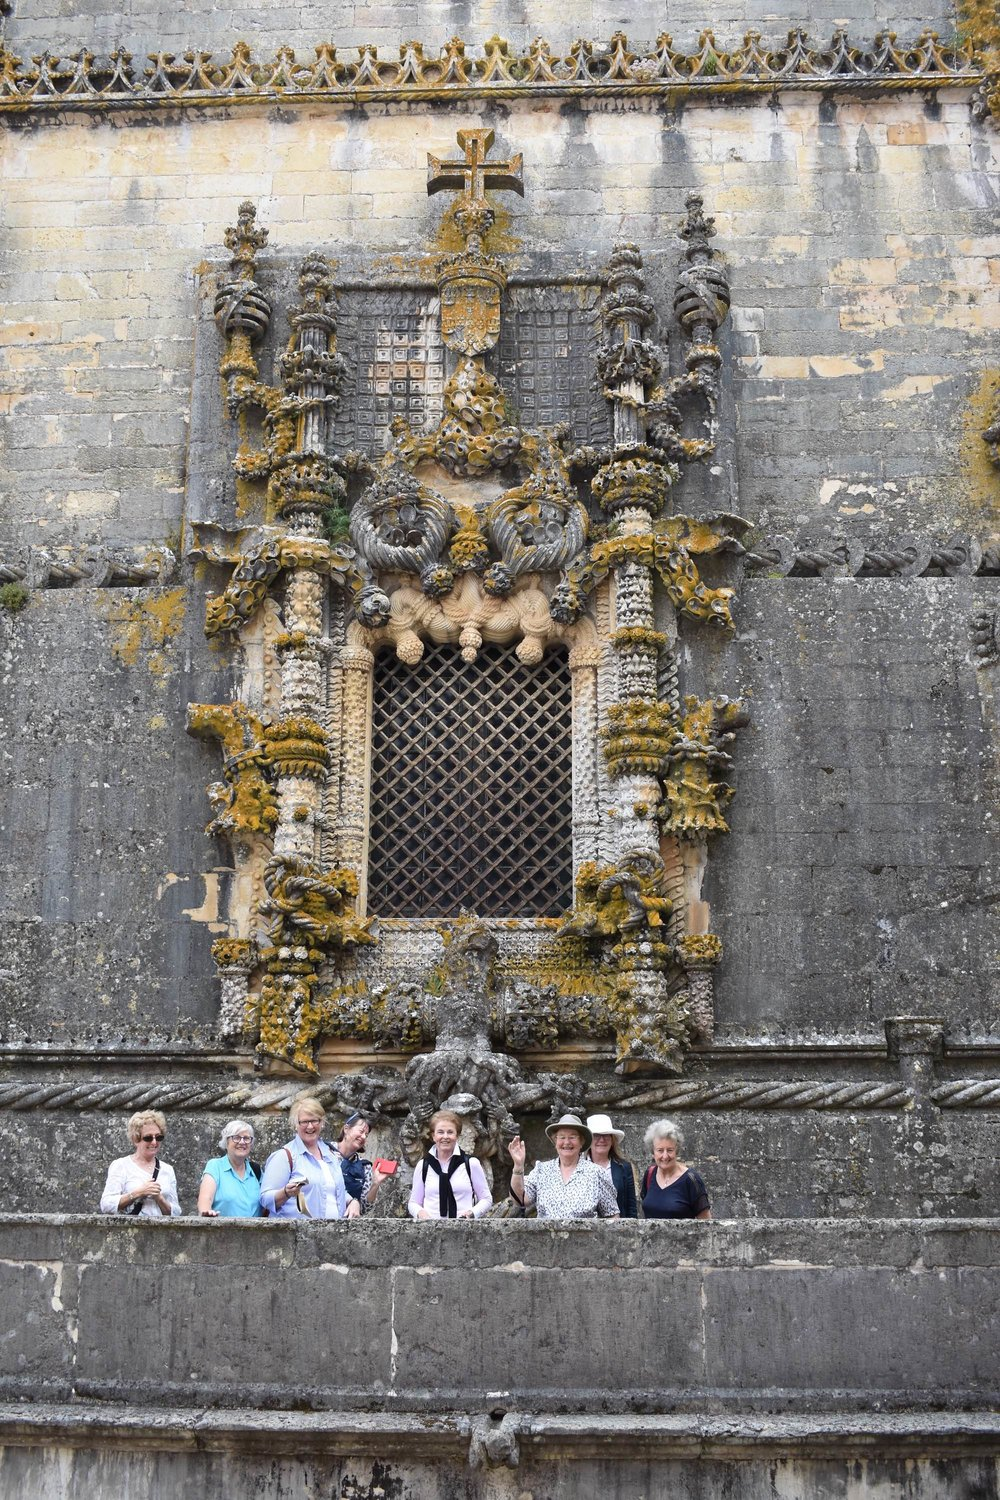 History springs to life in Tomar - ancient headquarters of the legendary Knights Templar